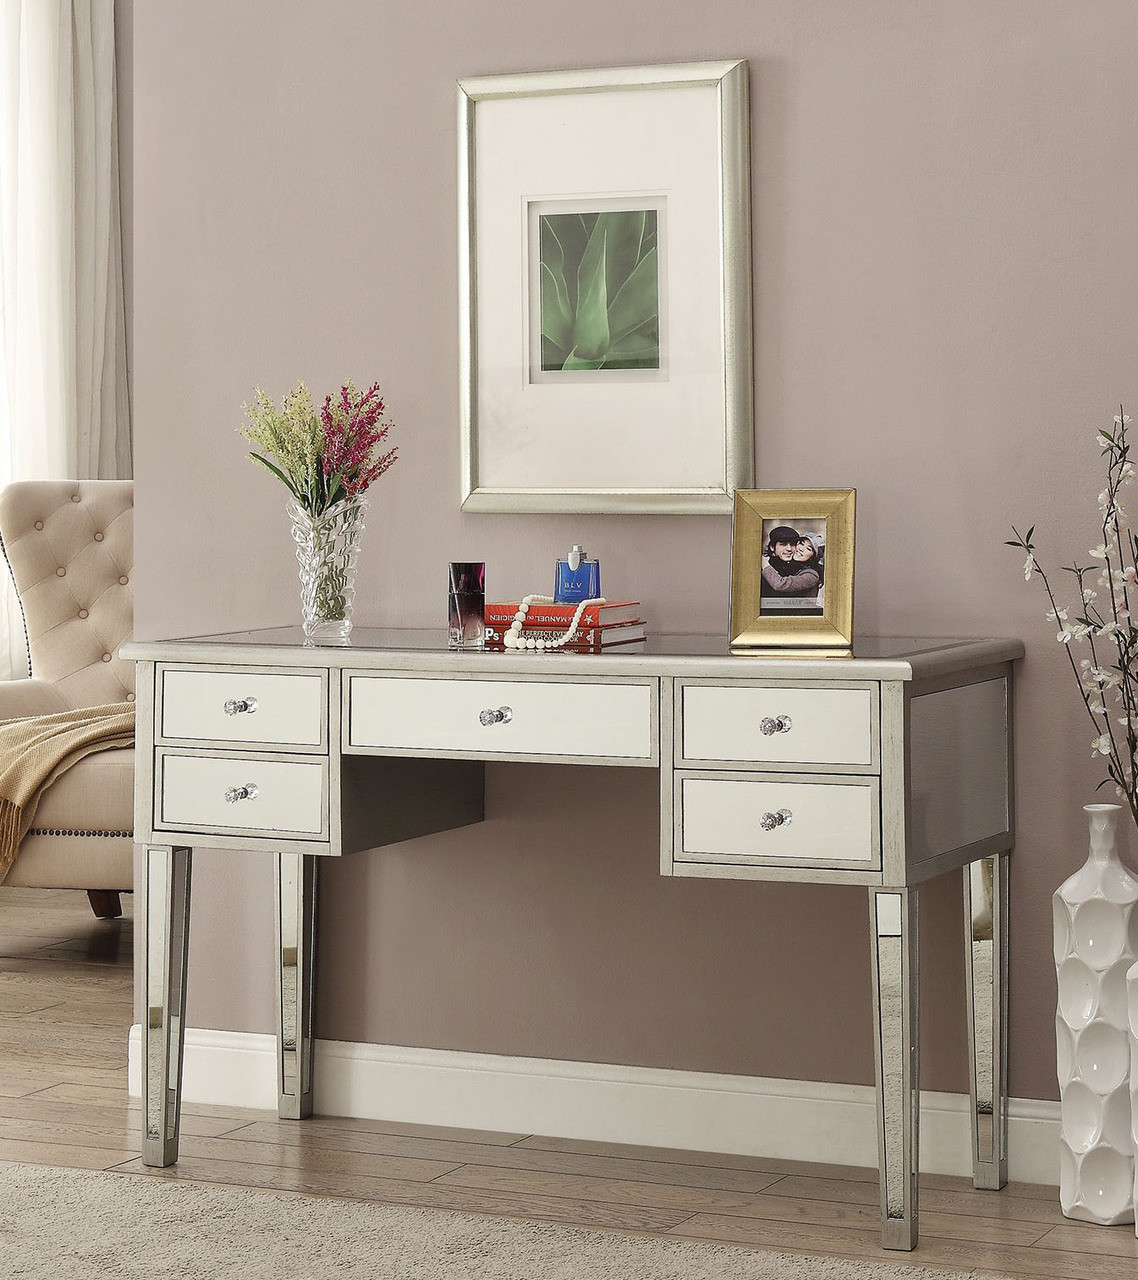 Zarina Antique Silver Mirrored Dressing Table - Zarina Antique Silver Mirrored Makeup Vanity Table